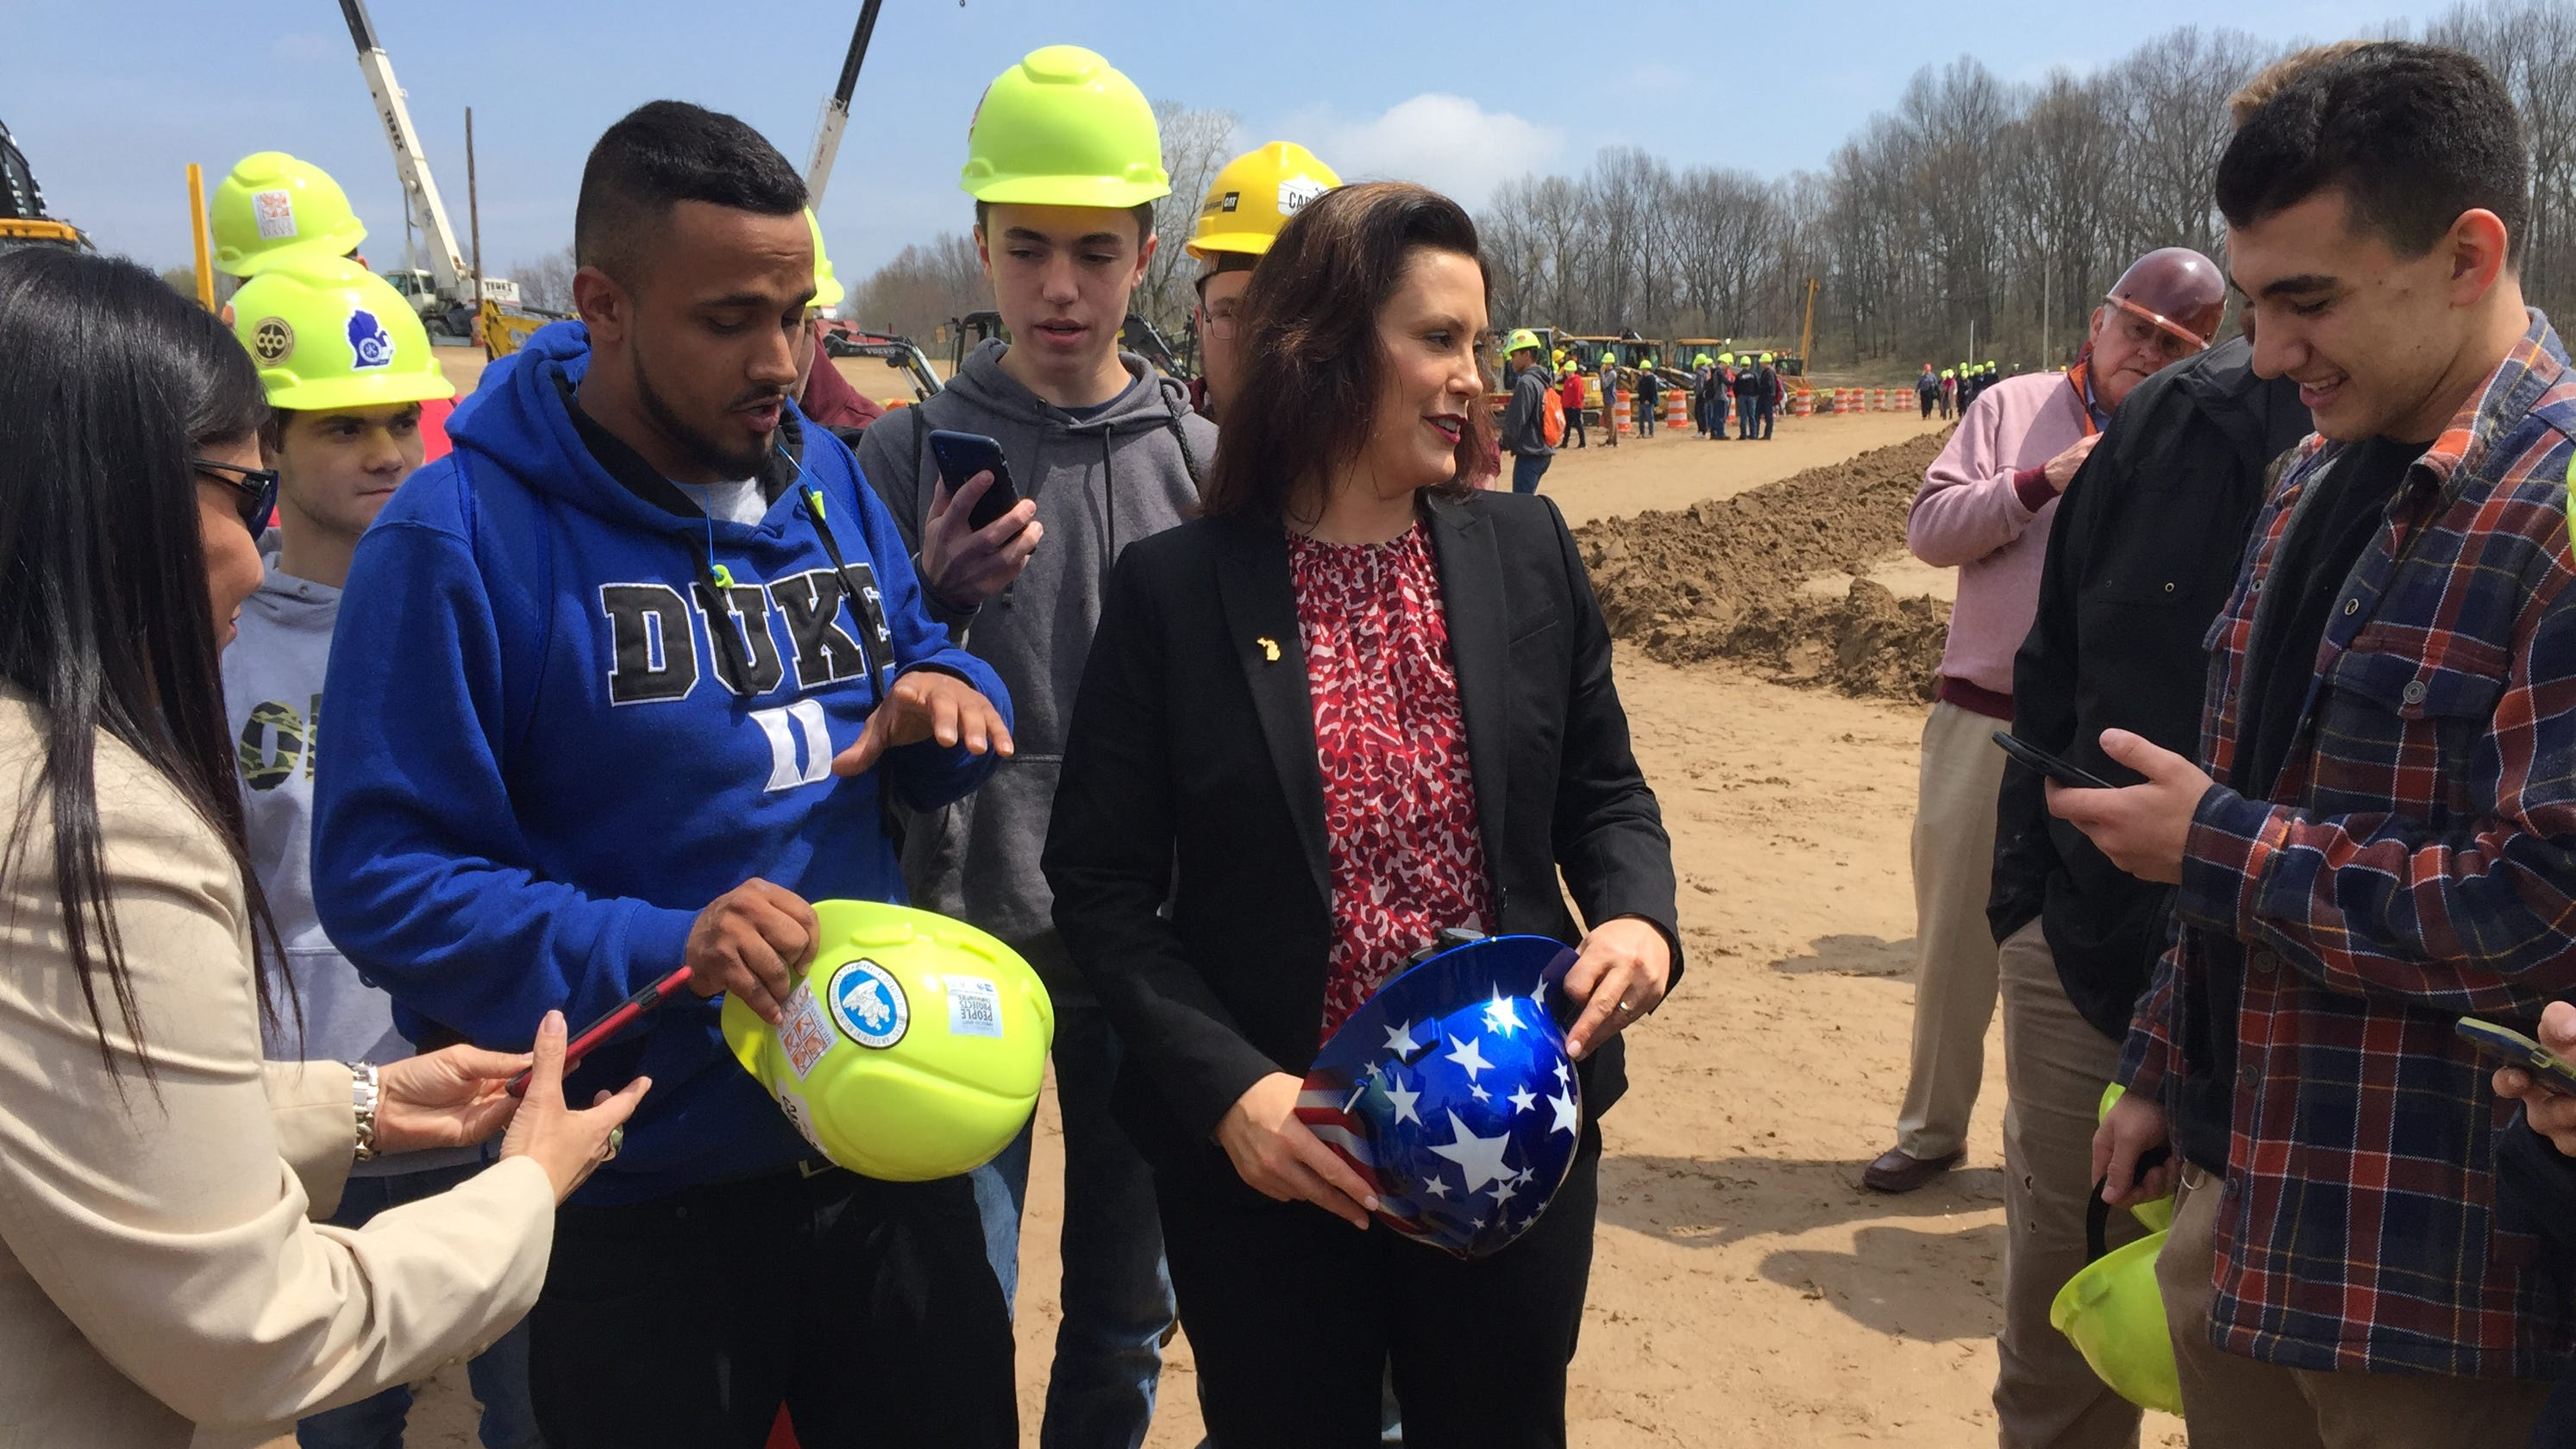 Whitmer Joins Students To Promote Jobs In Skilled Trades